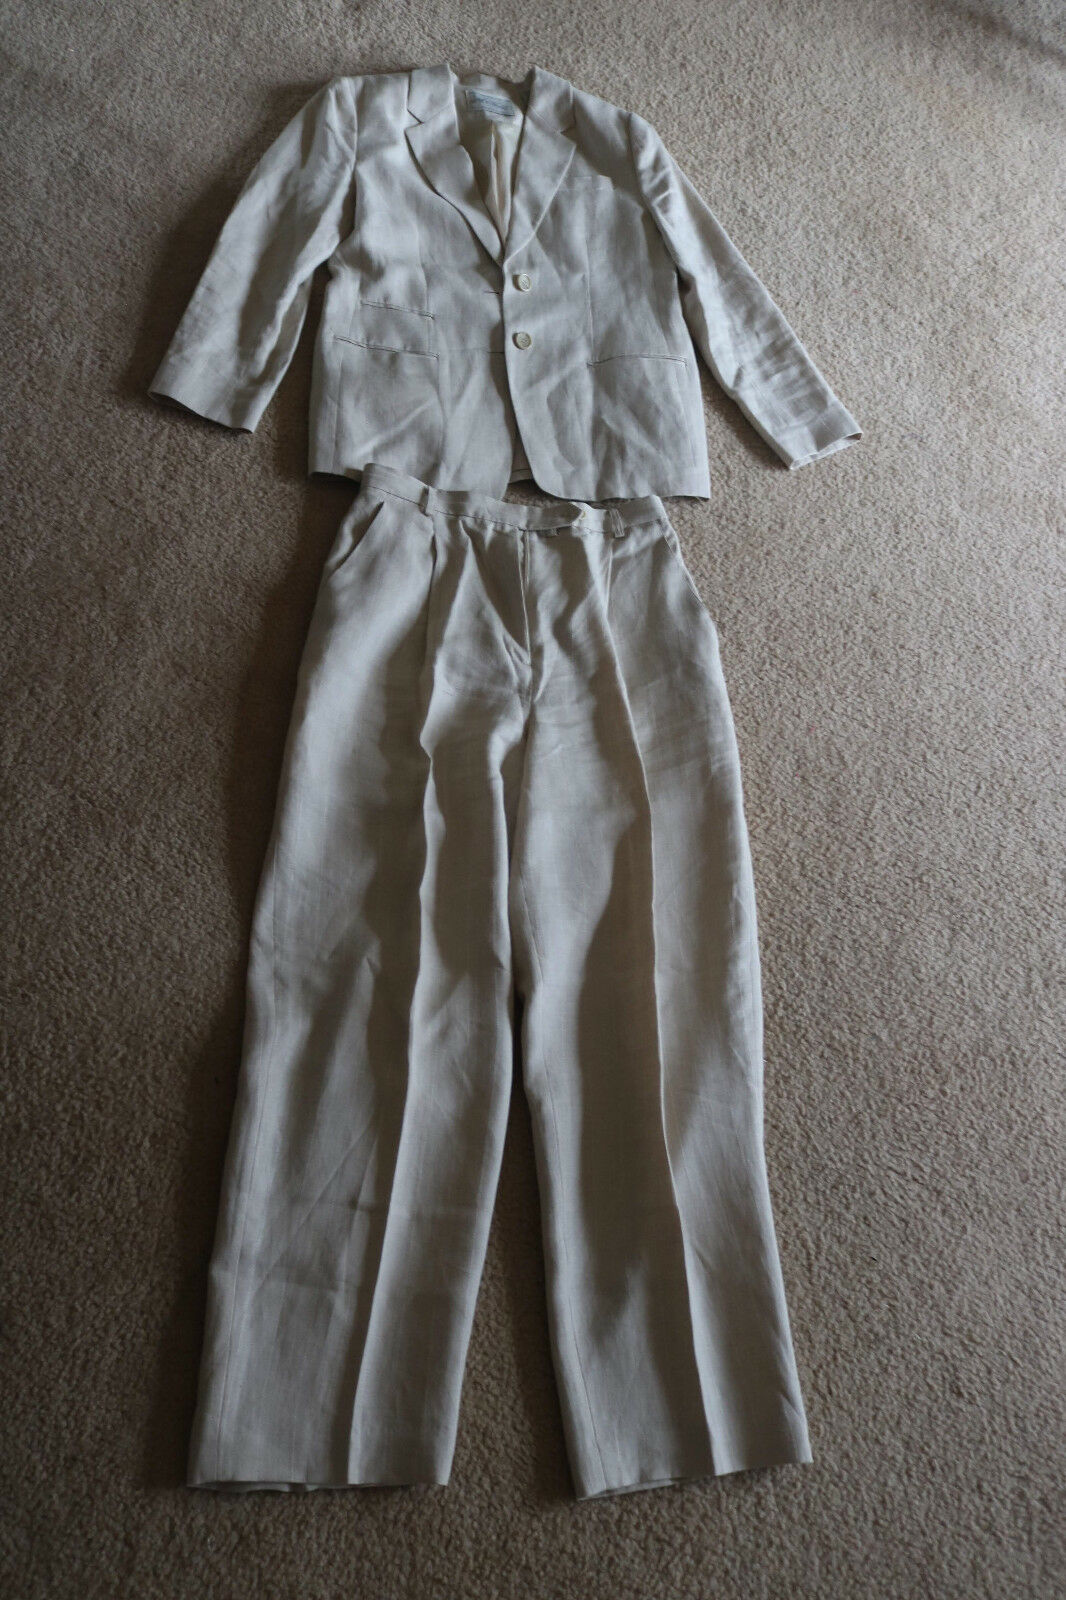 Lord & Taylor Exclusively For You Women's Trouser Suit Beige 100% Linen Striped